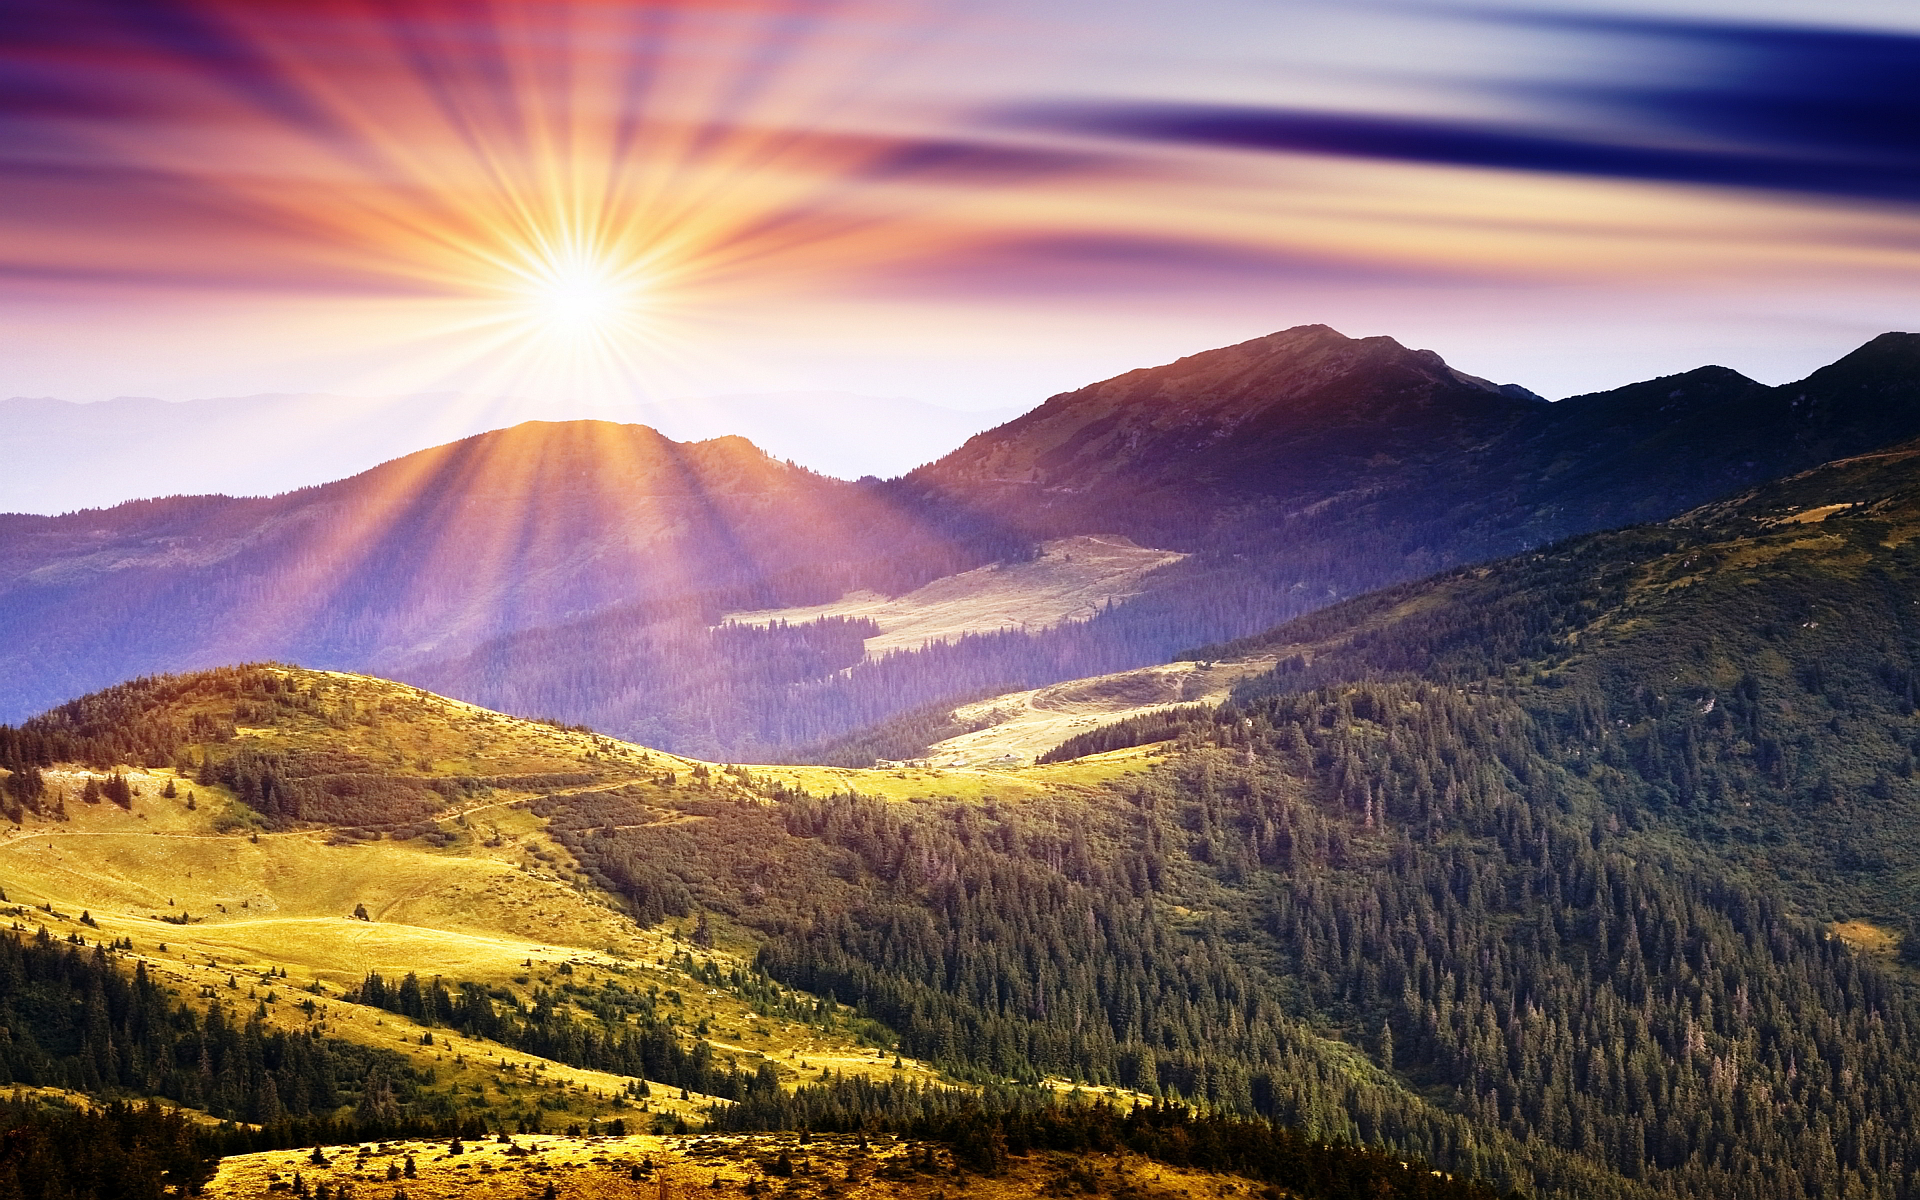 Sunshine Wallpaper Mountains Hd Desktop Wallpapers 4k Hd HD Wallpapers Download Free Images Wallpaper [1000image.com]